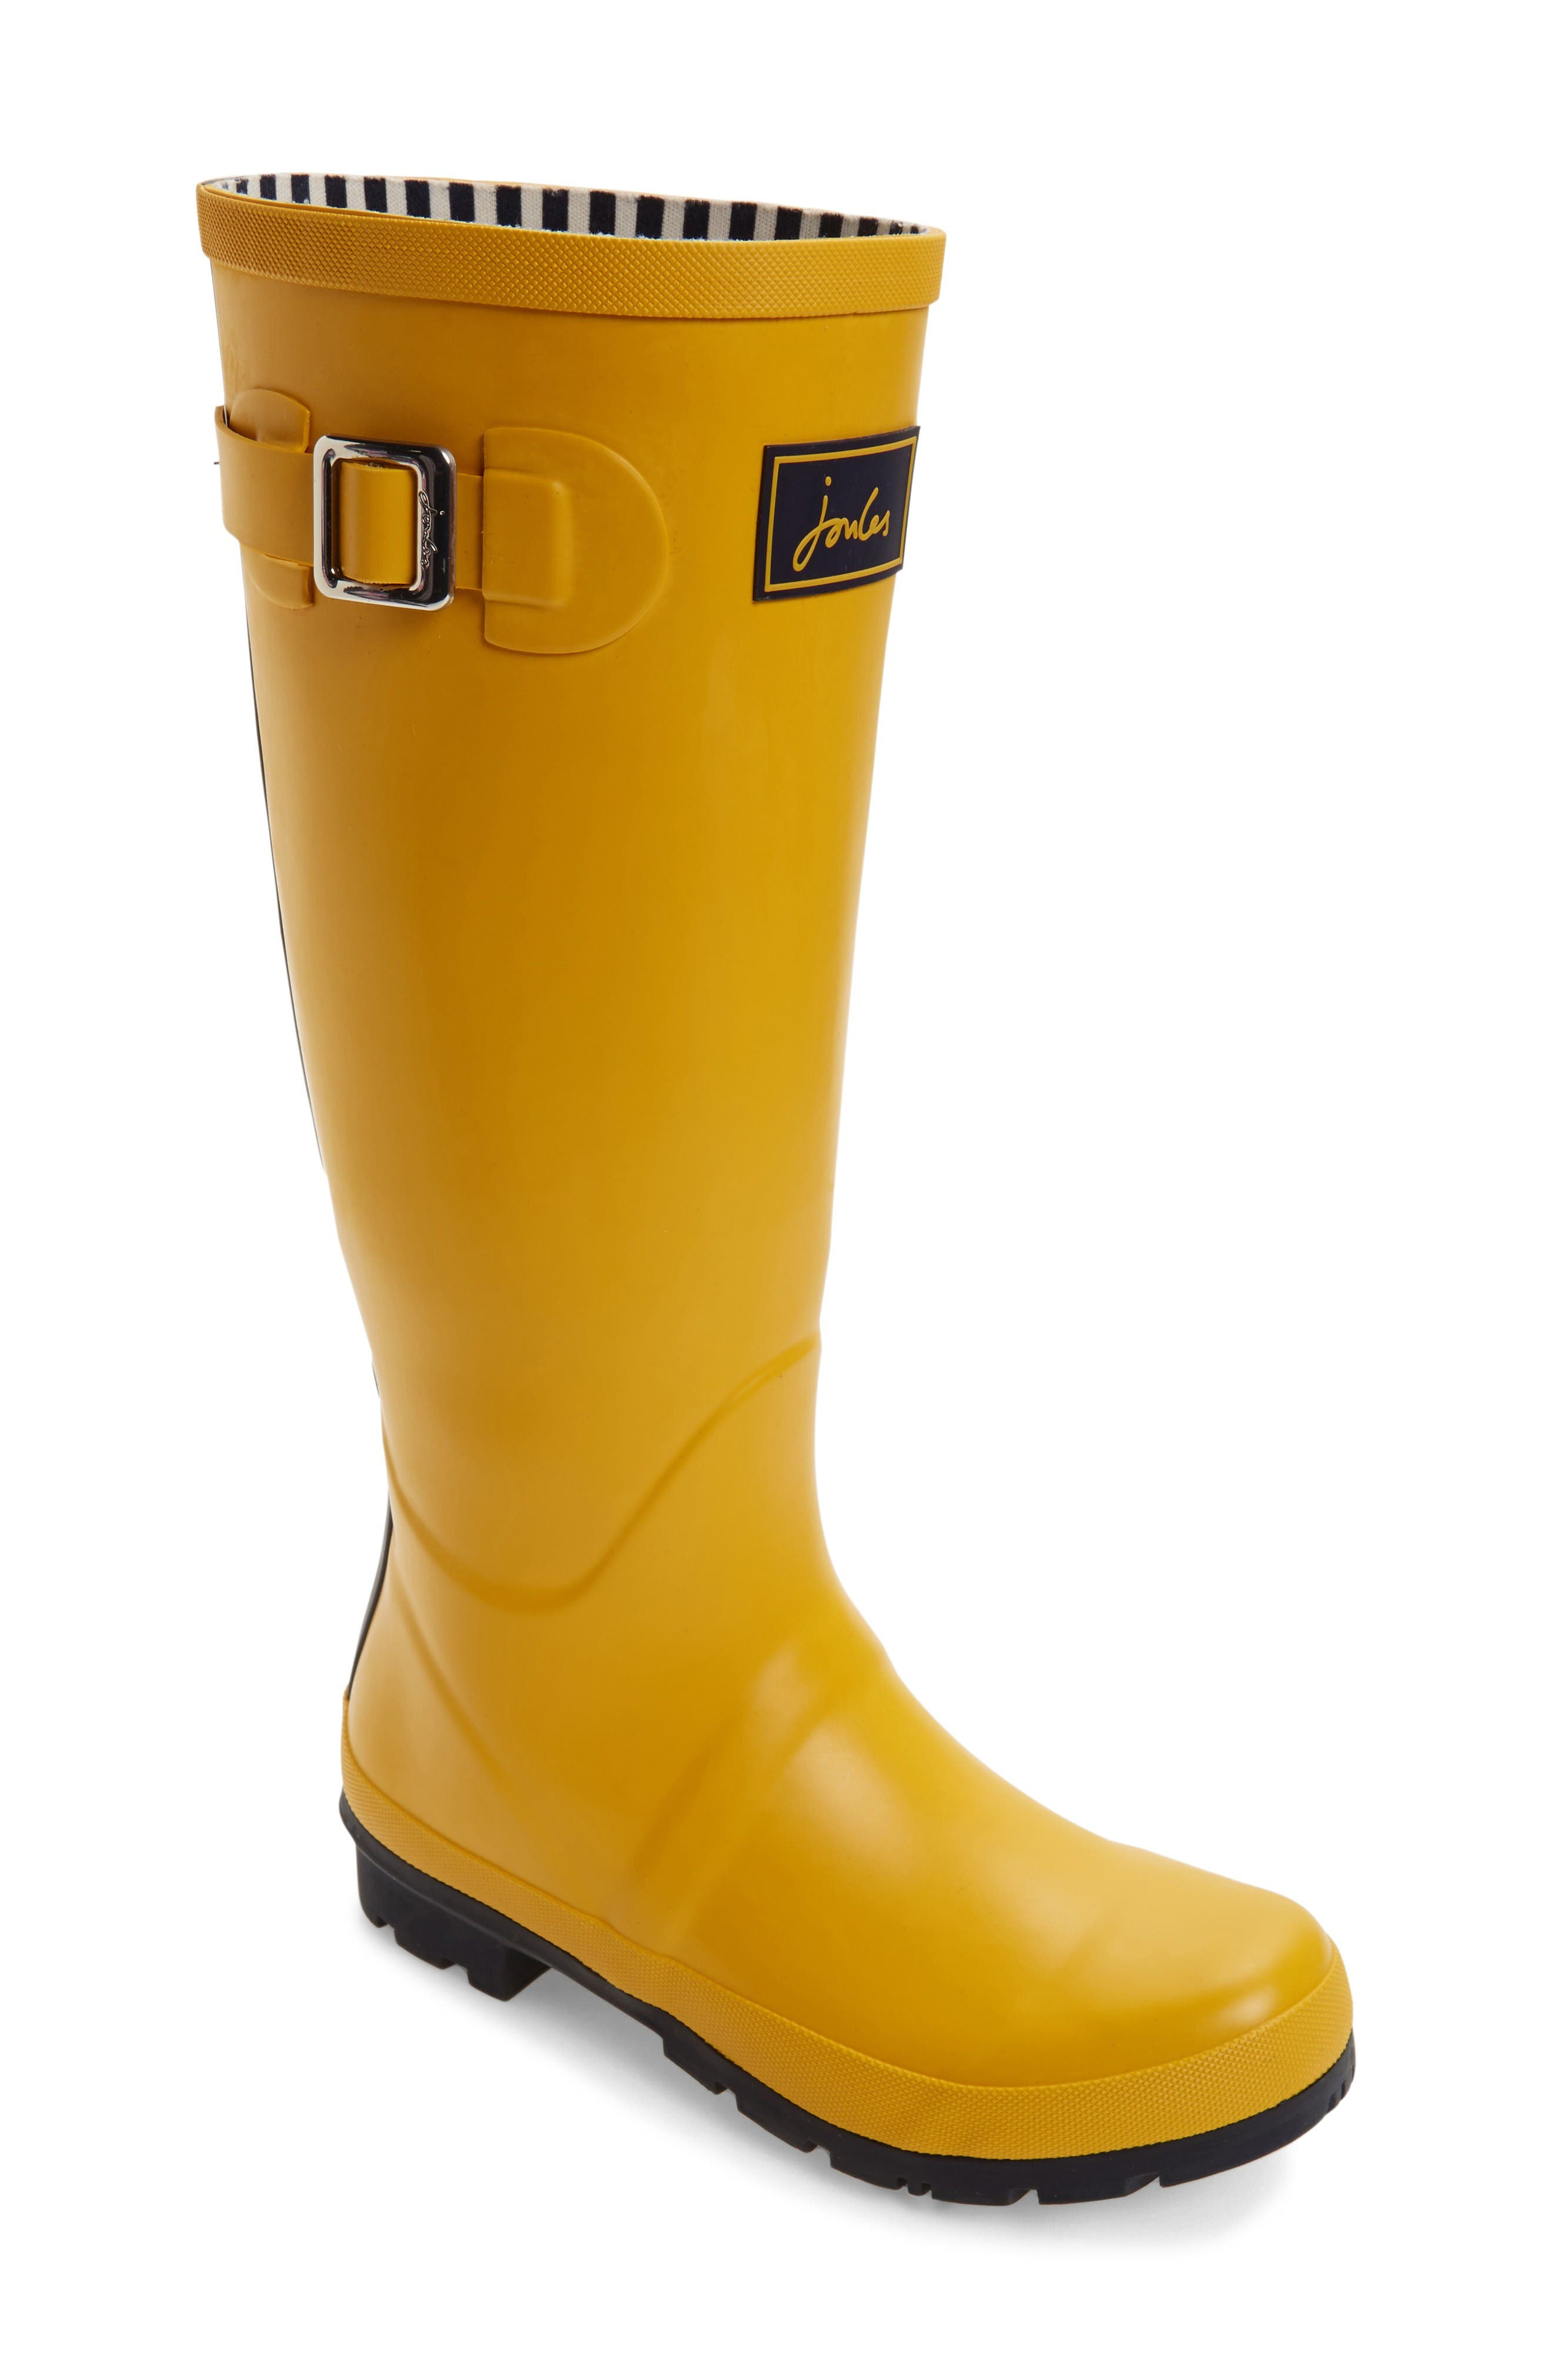 Alternate Image 1 Selected - Joules 'Field Welly' Rain Boot (Women)